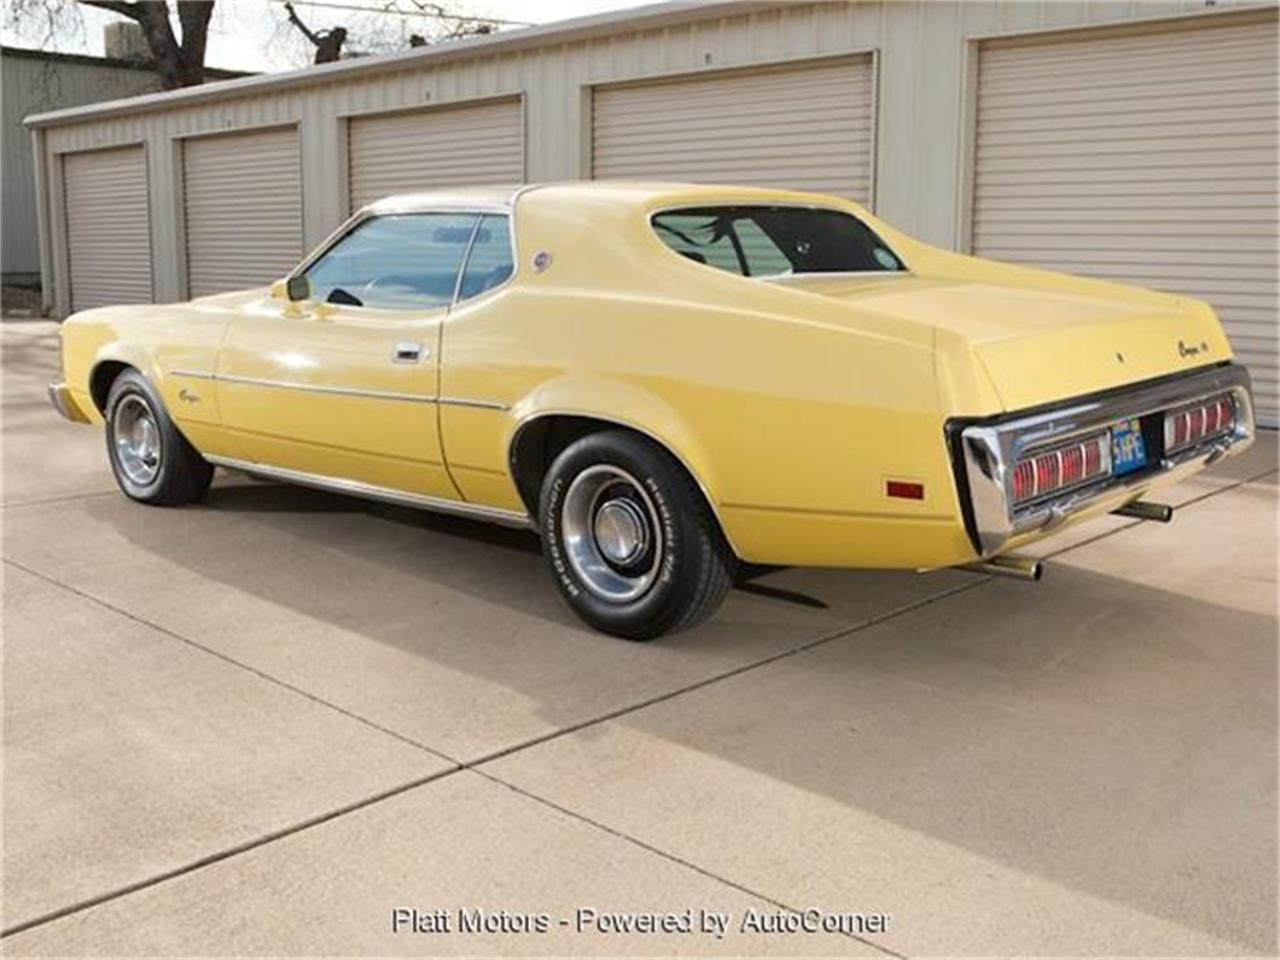 1973 Mercury Cougar Xr7 For Sale Classiccars Com Cc 655662